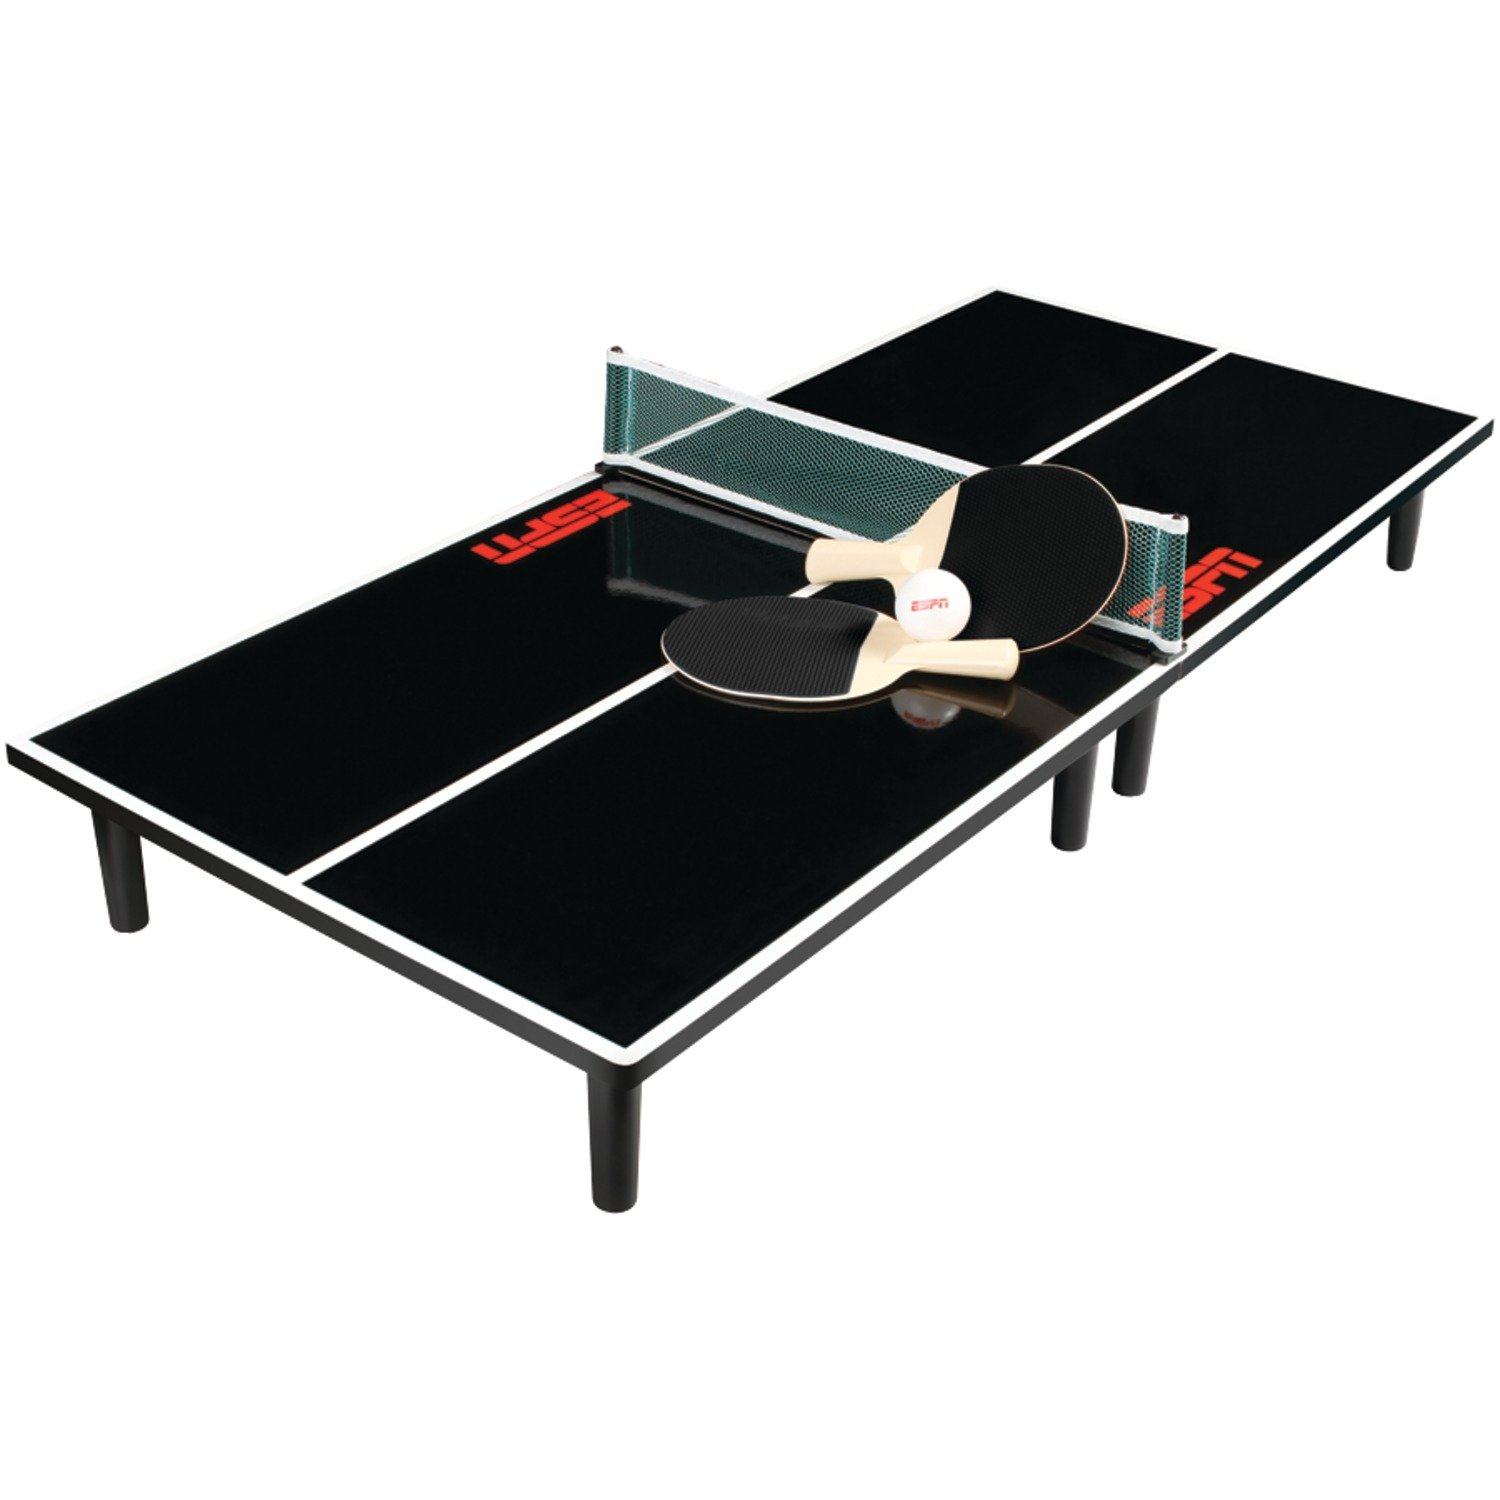 Superieur Amazon.com : ESPN Tennis Tabletop : Tabletop Table Tennis Games : Sports U0026  Outdoors